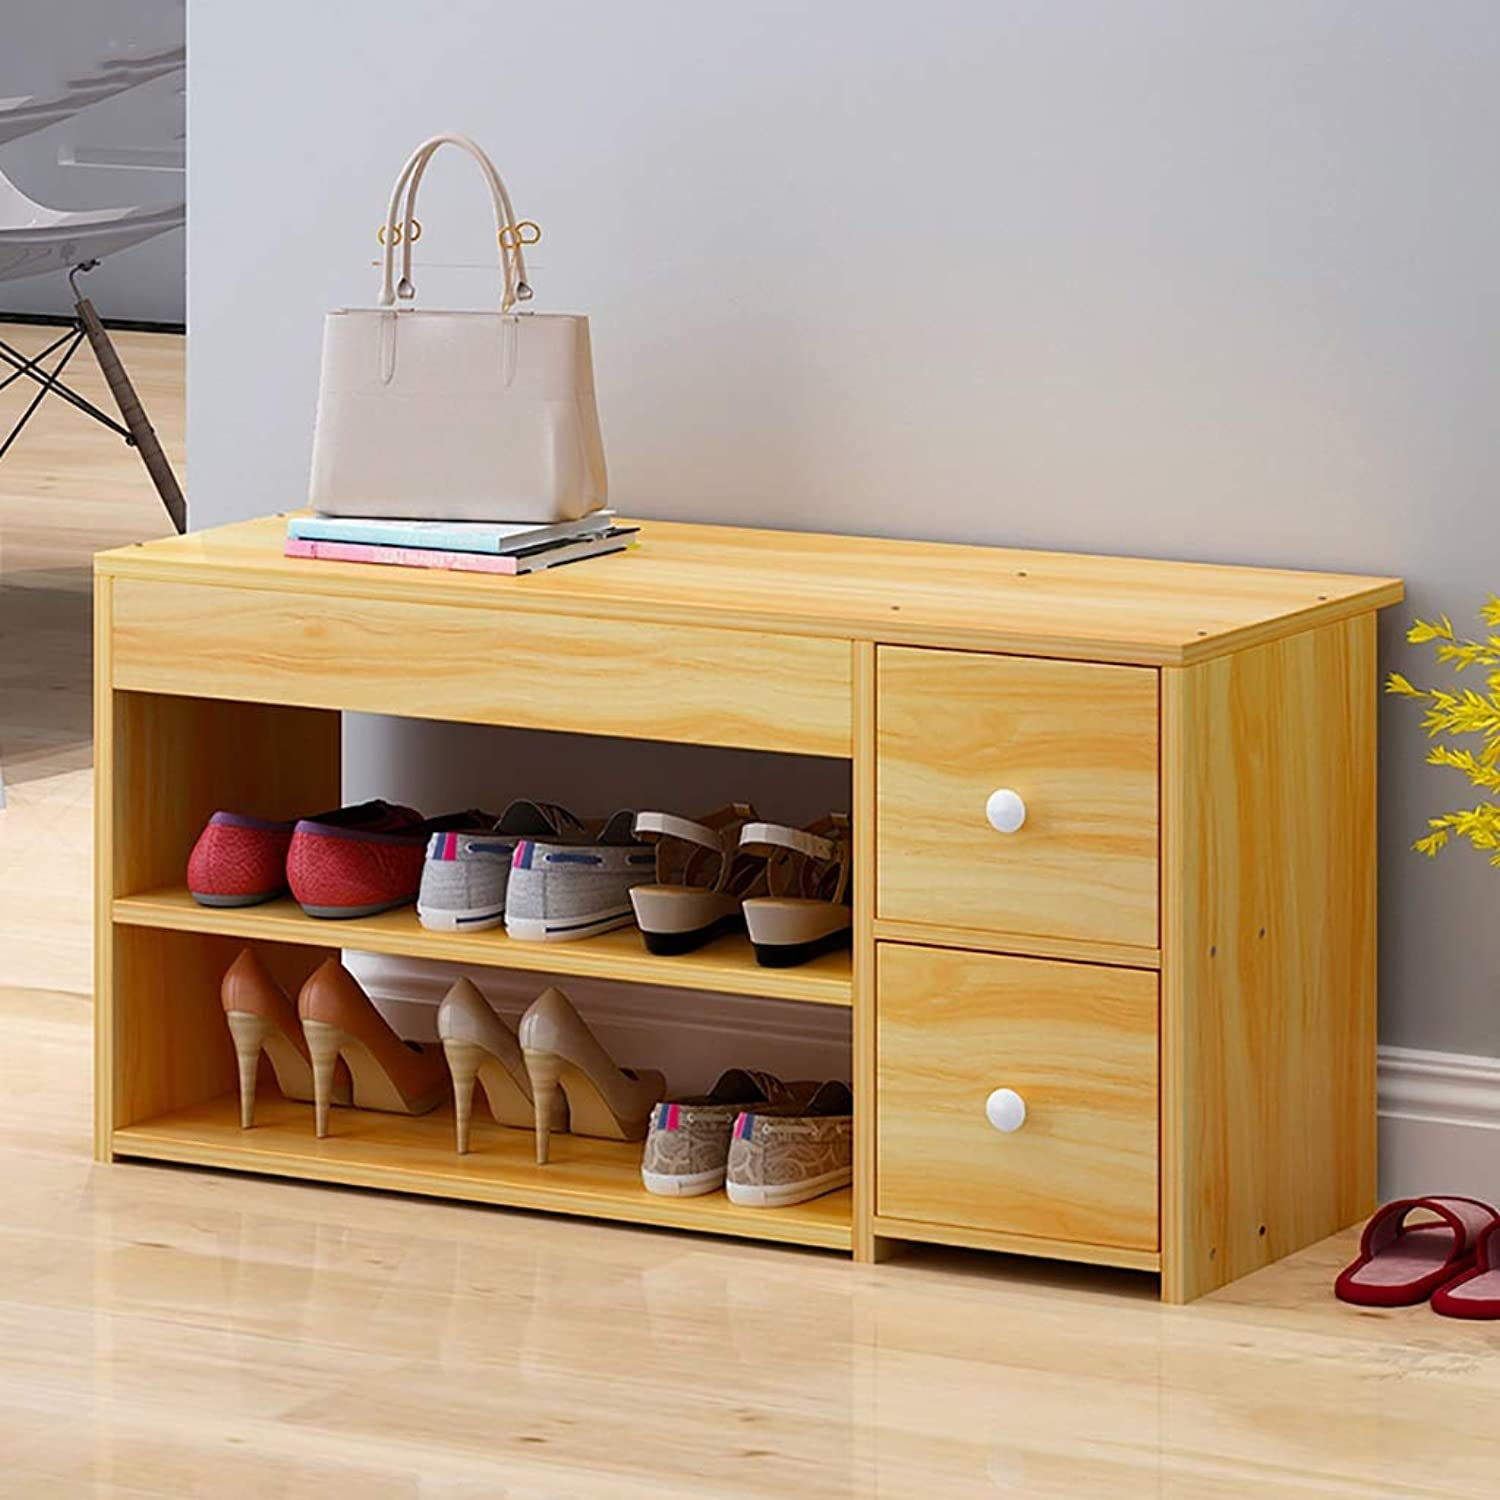 Entrance Door Change shoes Bench Double Layer shoes Rack shoes Stool Storage Stool Frame Sofa Stool shoes Cabinet Shelf for The Living Room Doorway (color   A, Size   80  30  42cm)